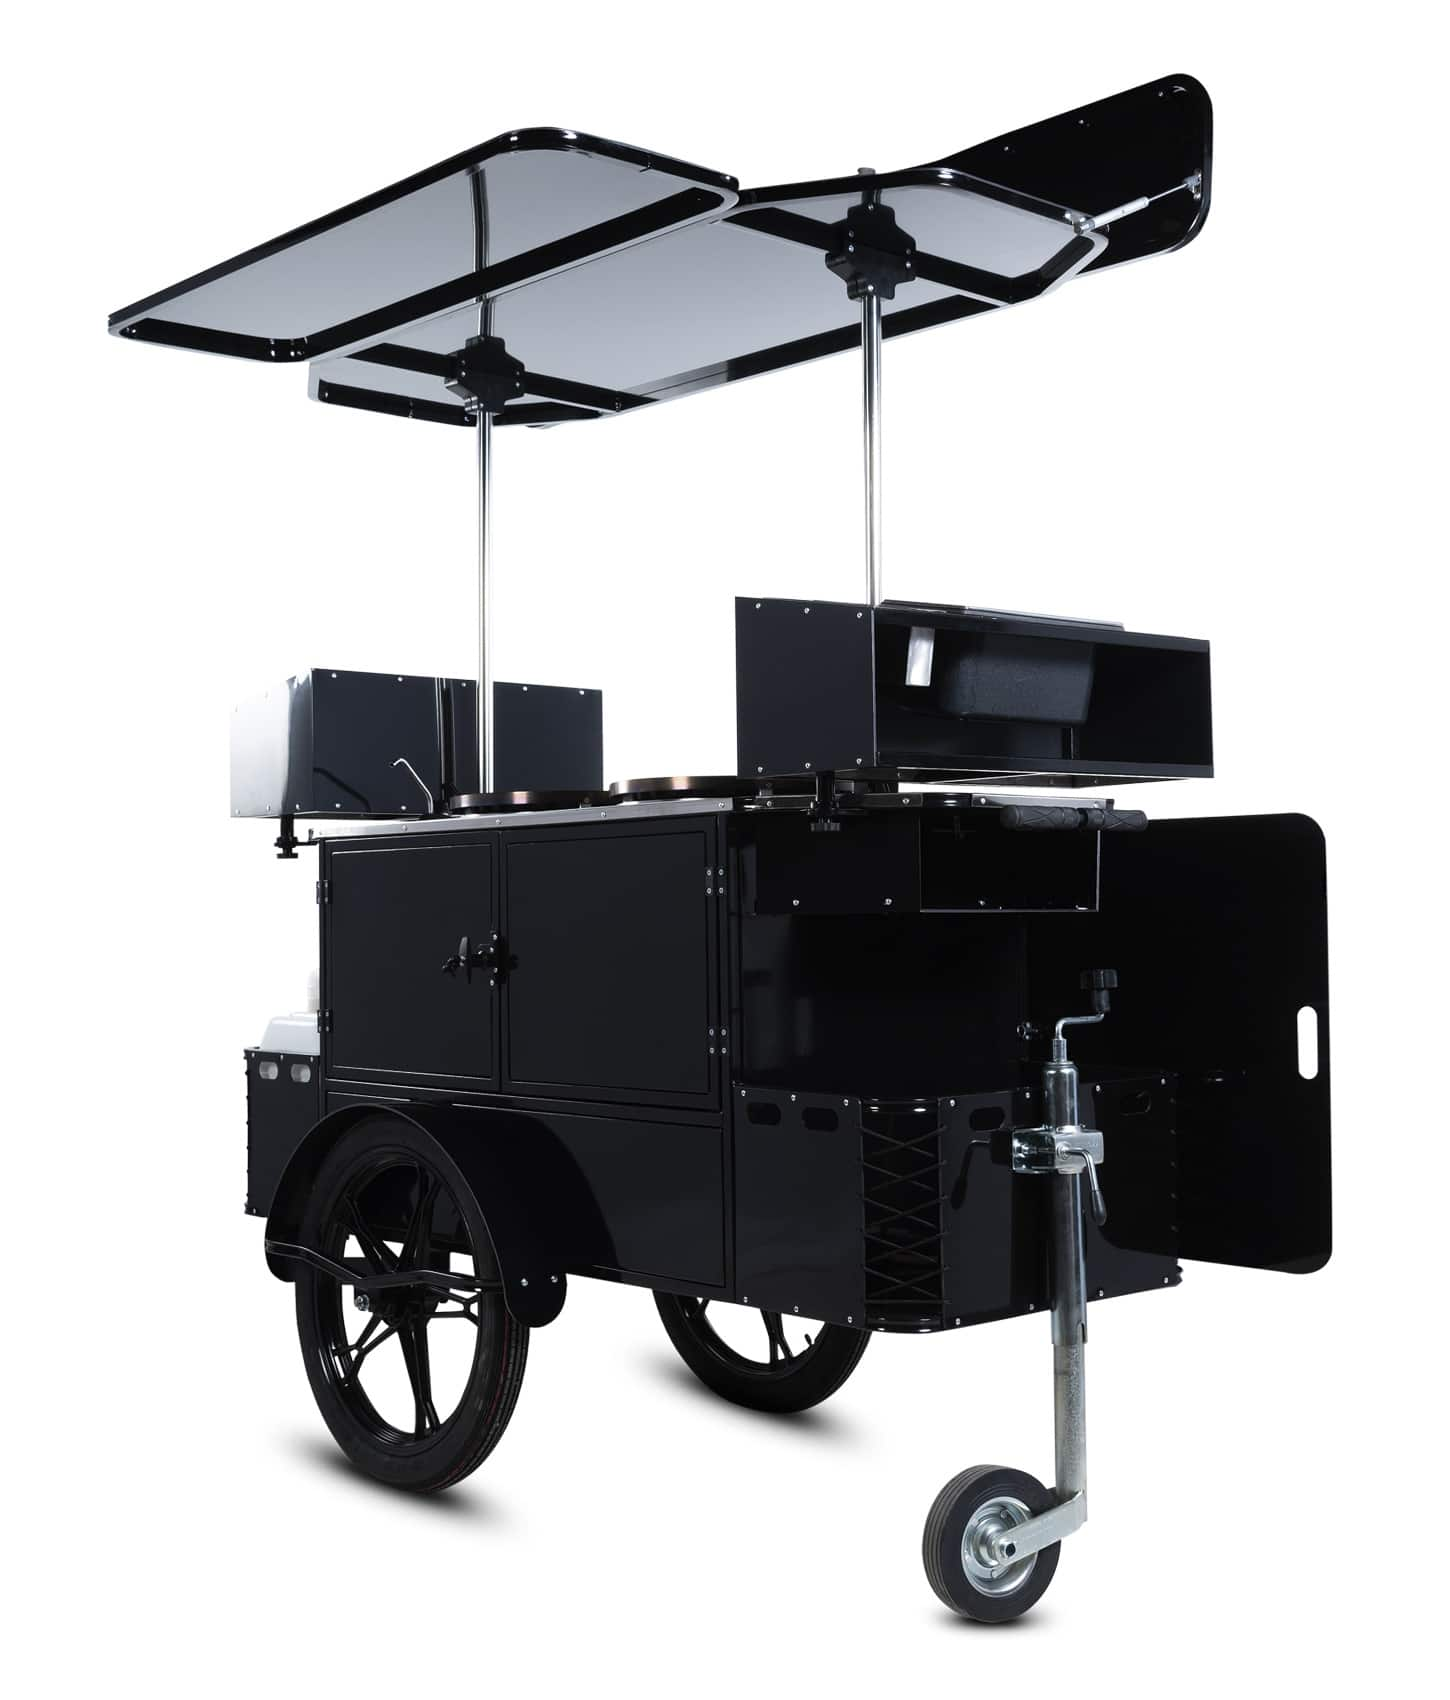 Bizz On Wheels crepe cart perspective view